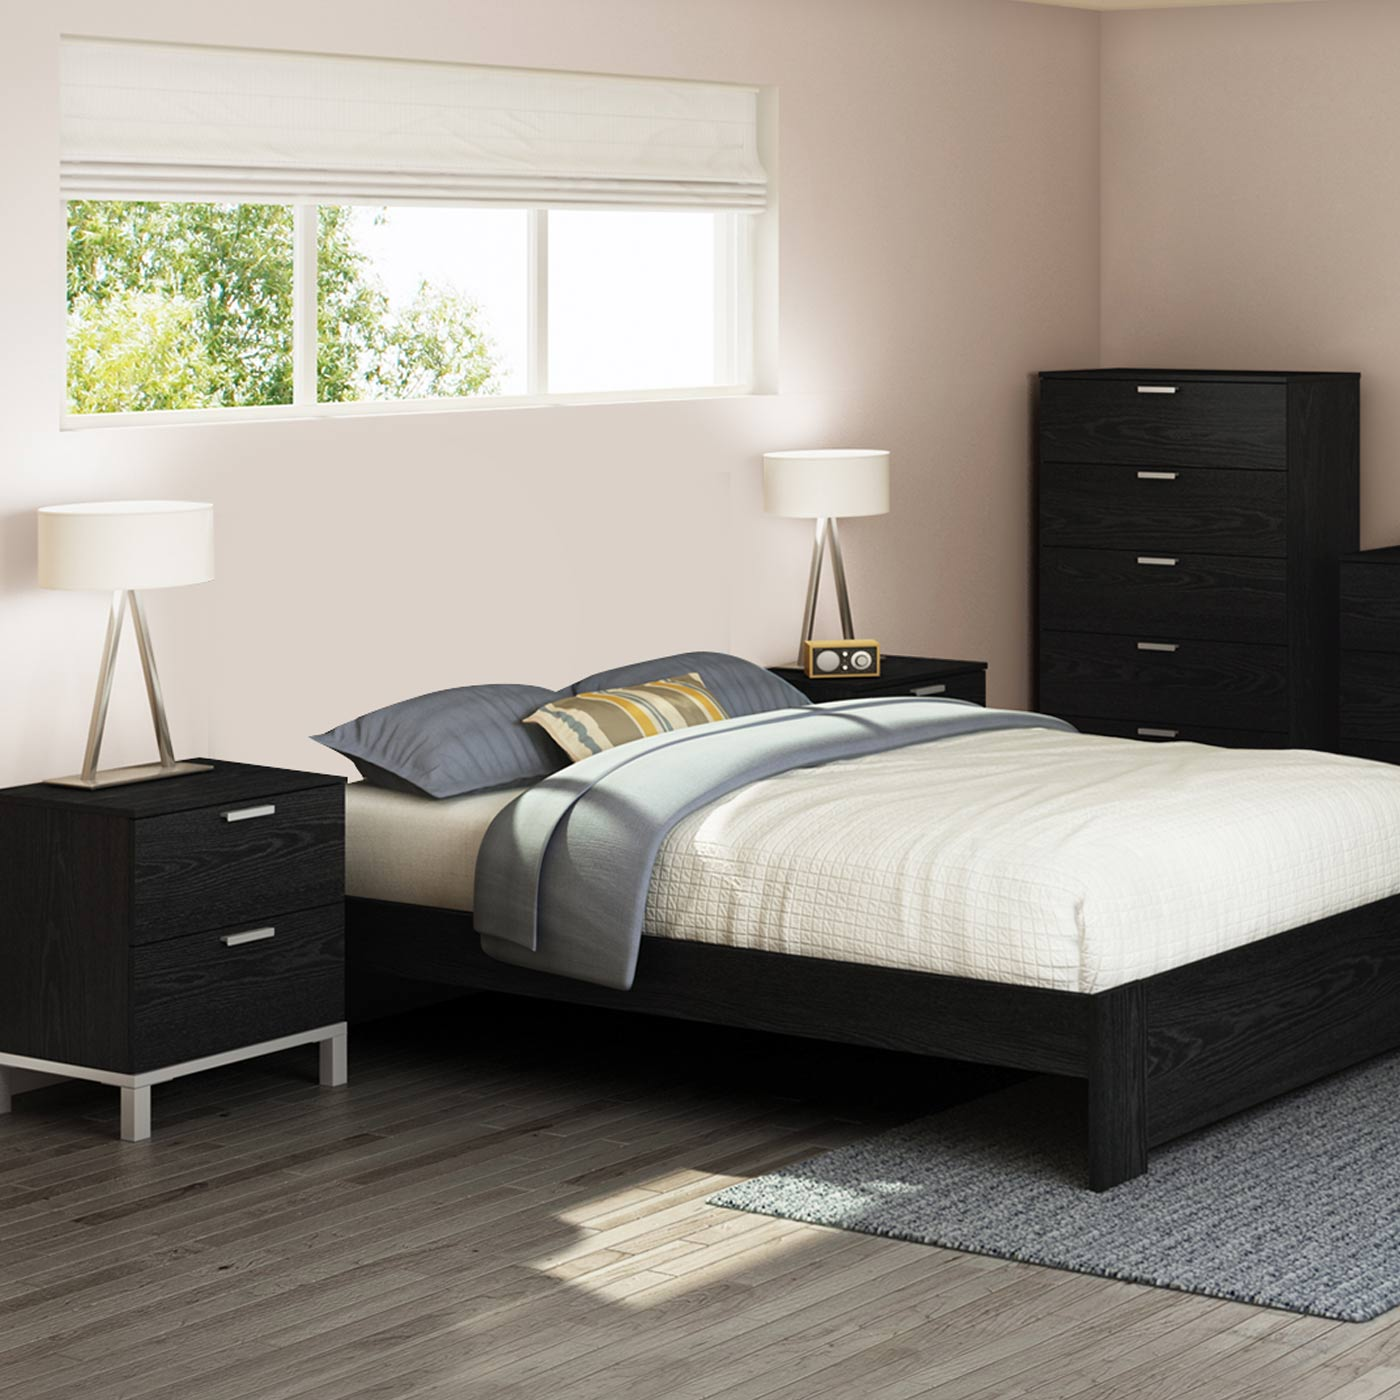 Southshore Flexible 3 Piece Bedroom Set Flexible Queen Platform Bed 5 Drawer Chest And Nightstand In Black Oak